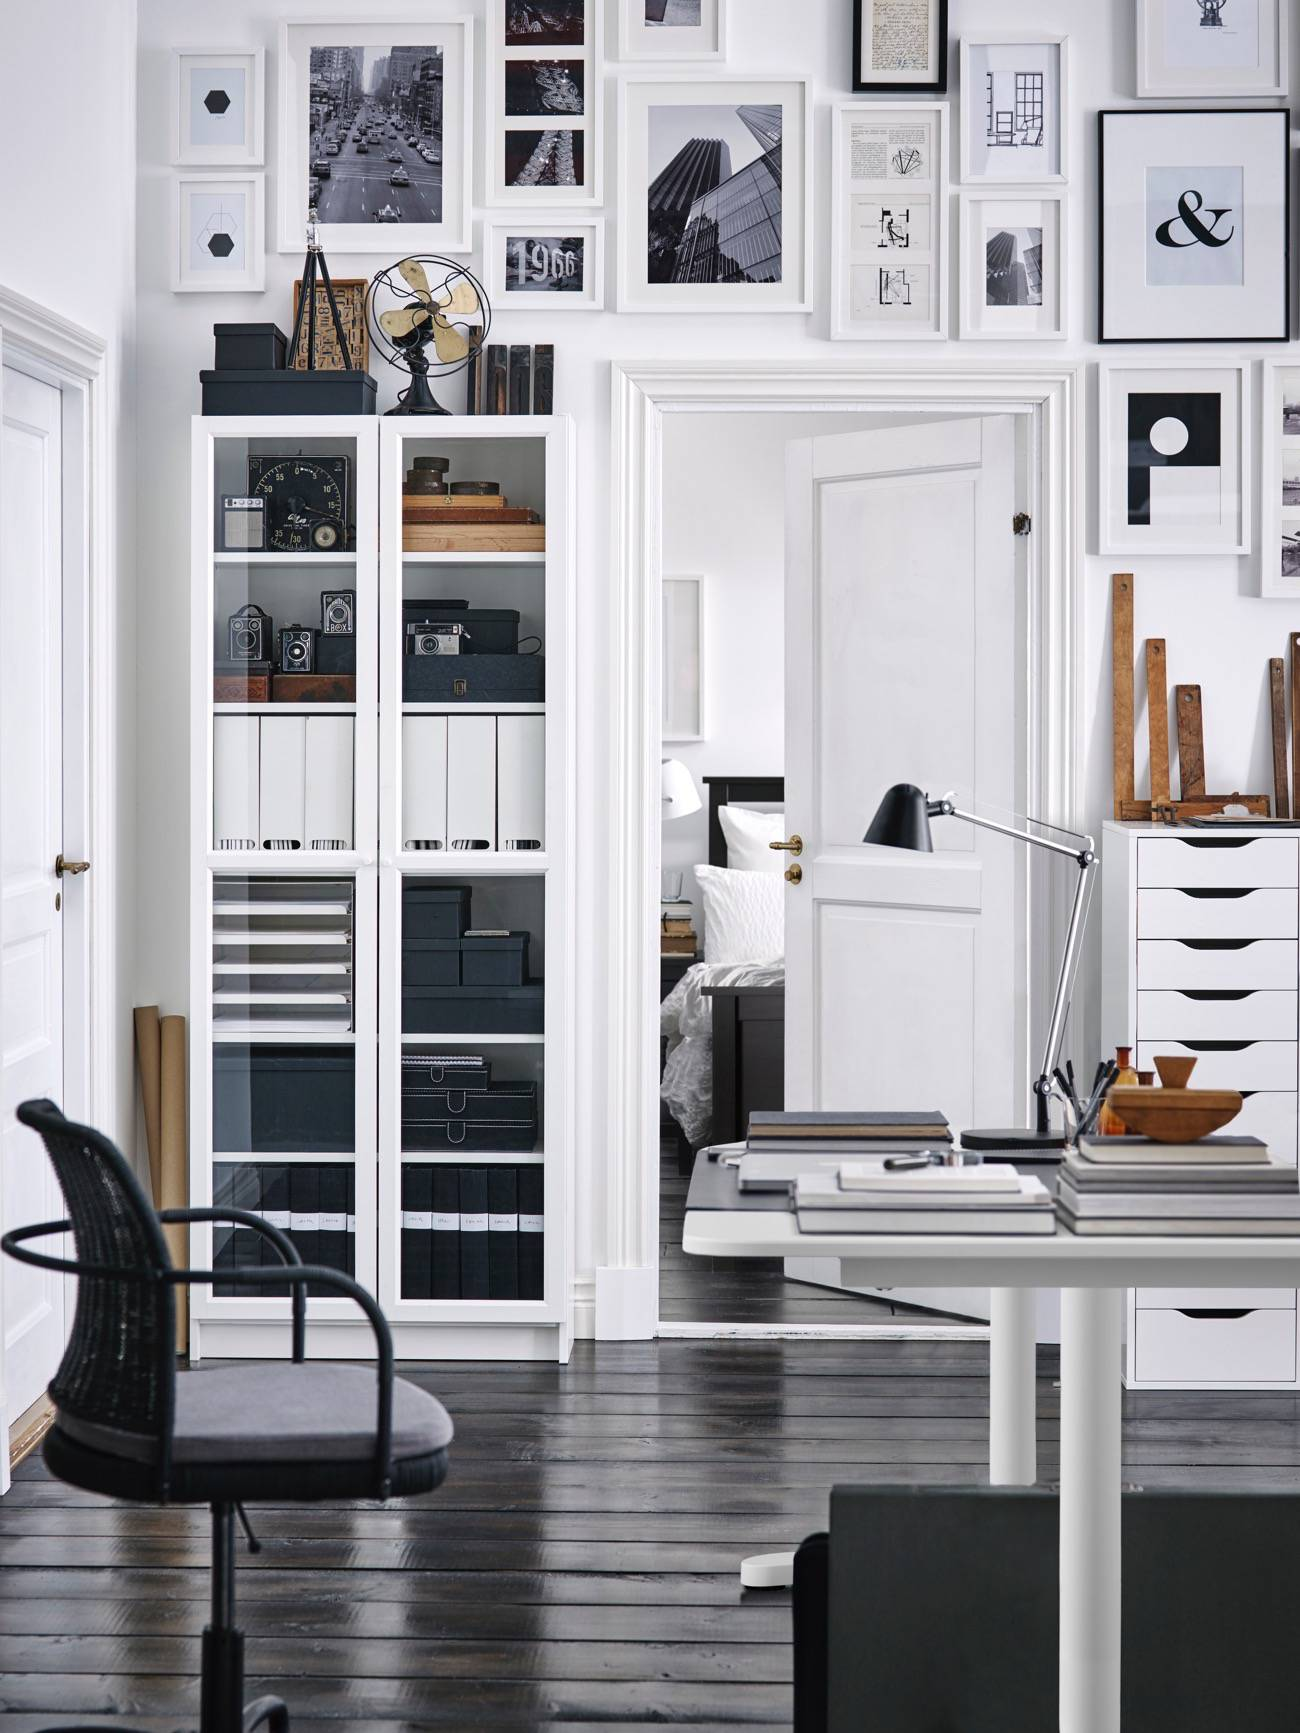 New Doors For Kitchen Cabinets Rooms Of Ikea 2016 Catalogue